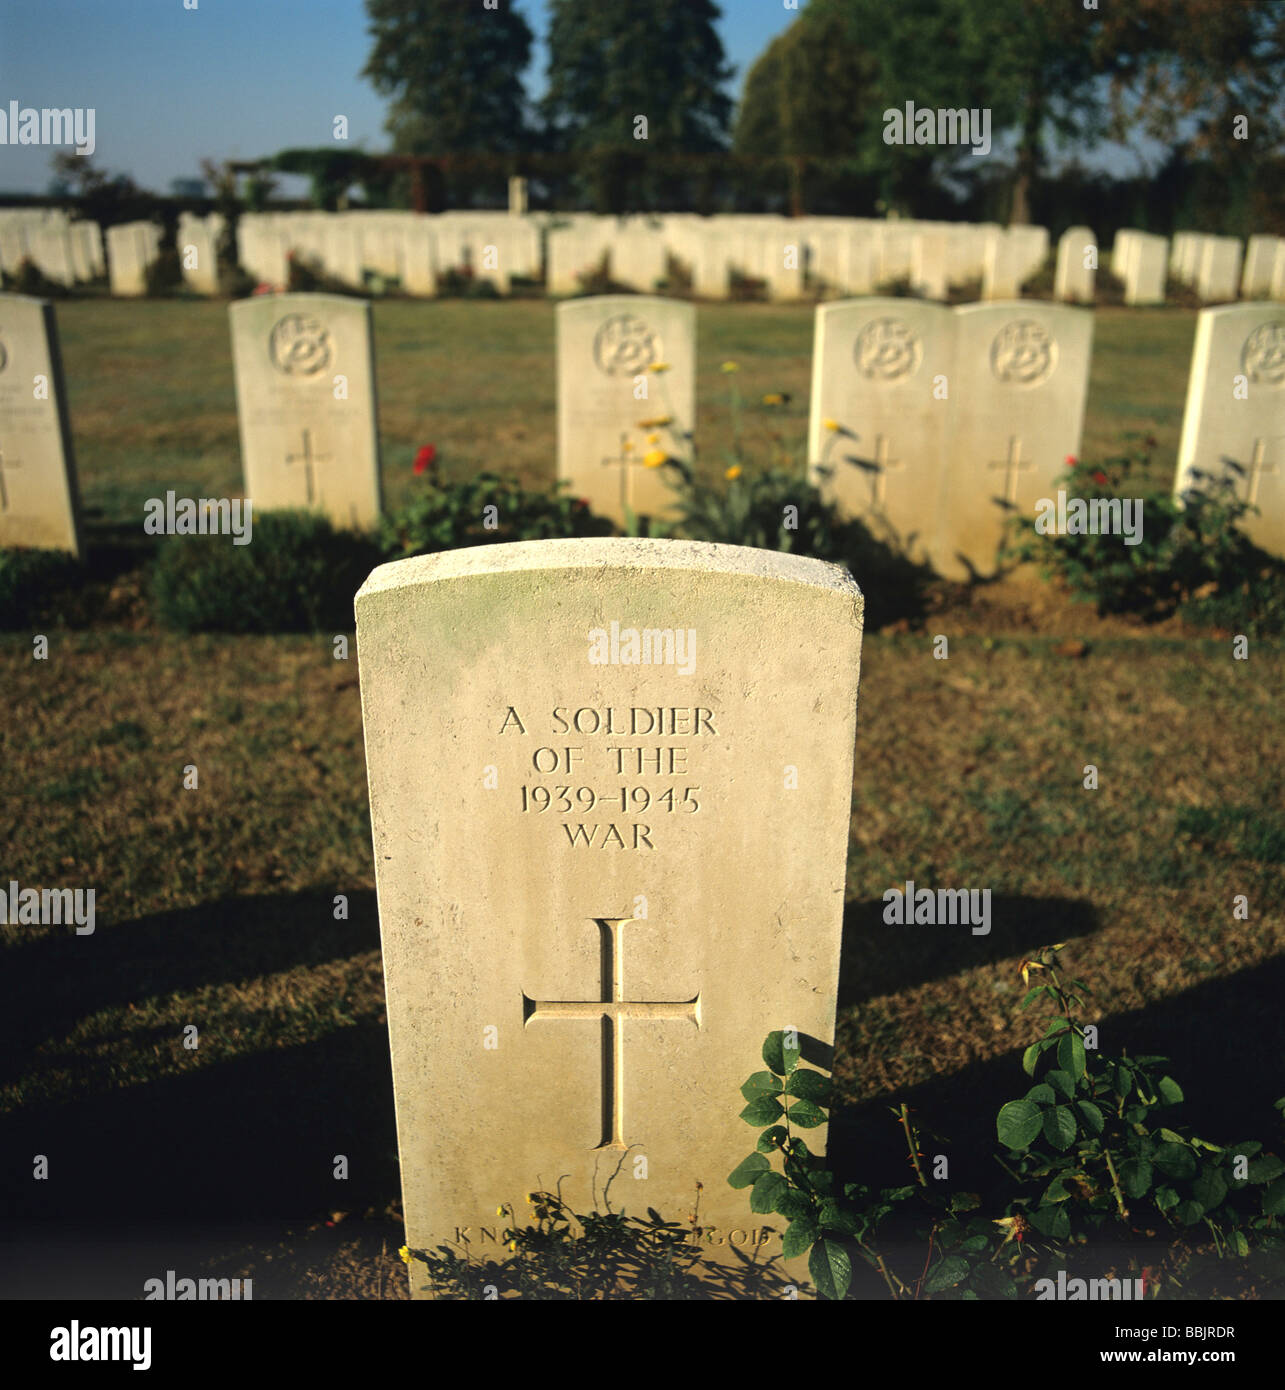 Grave of an unknown soldier at the Commonwealth Military Cemetery at Hermanville-sur-mer, Normandy, France - Stock Image